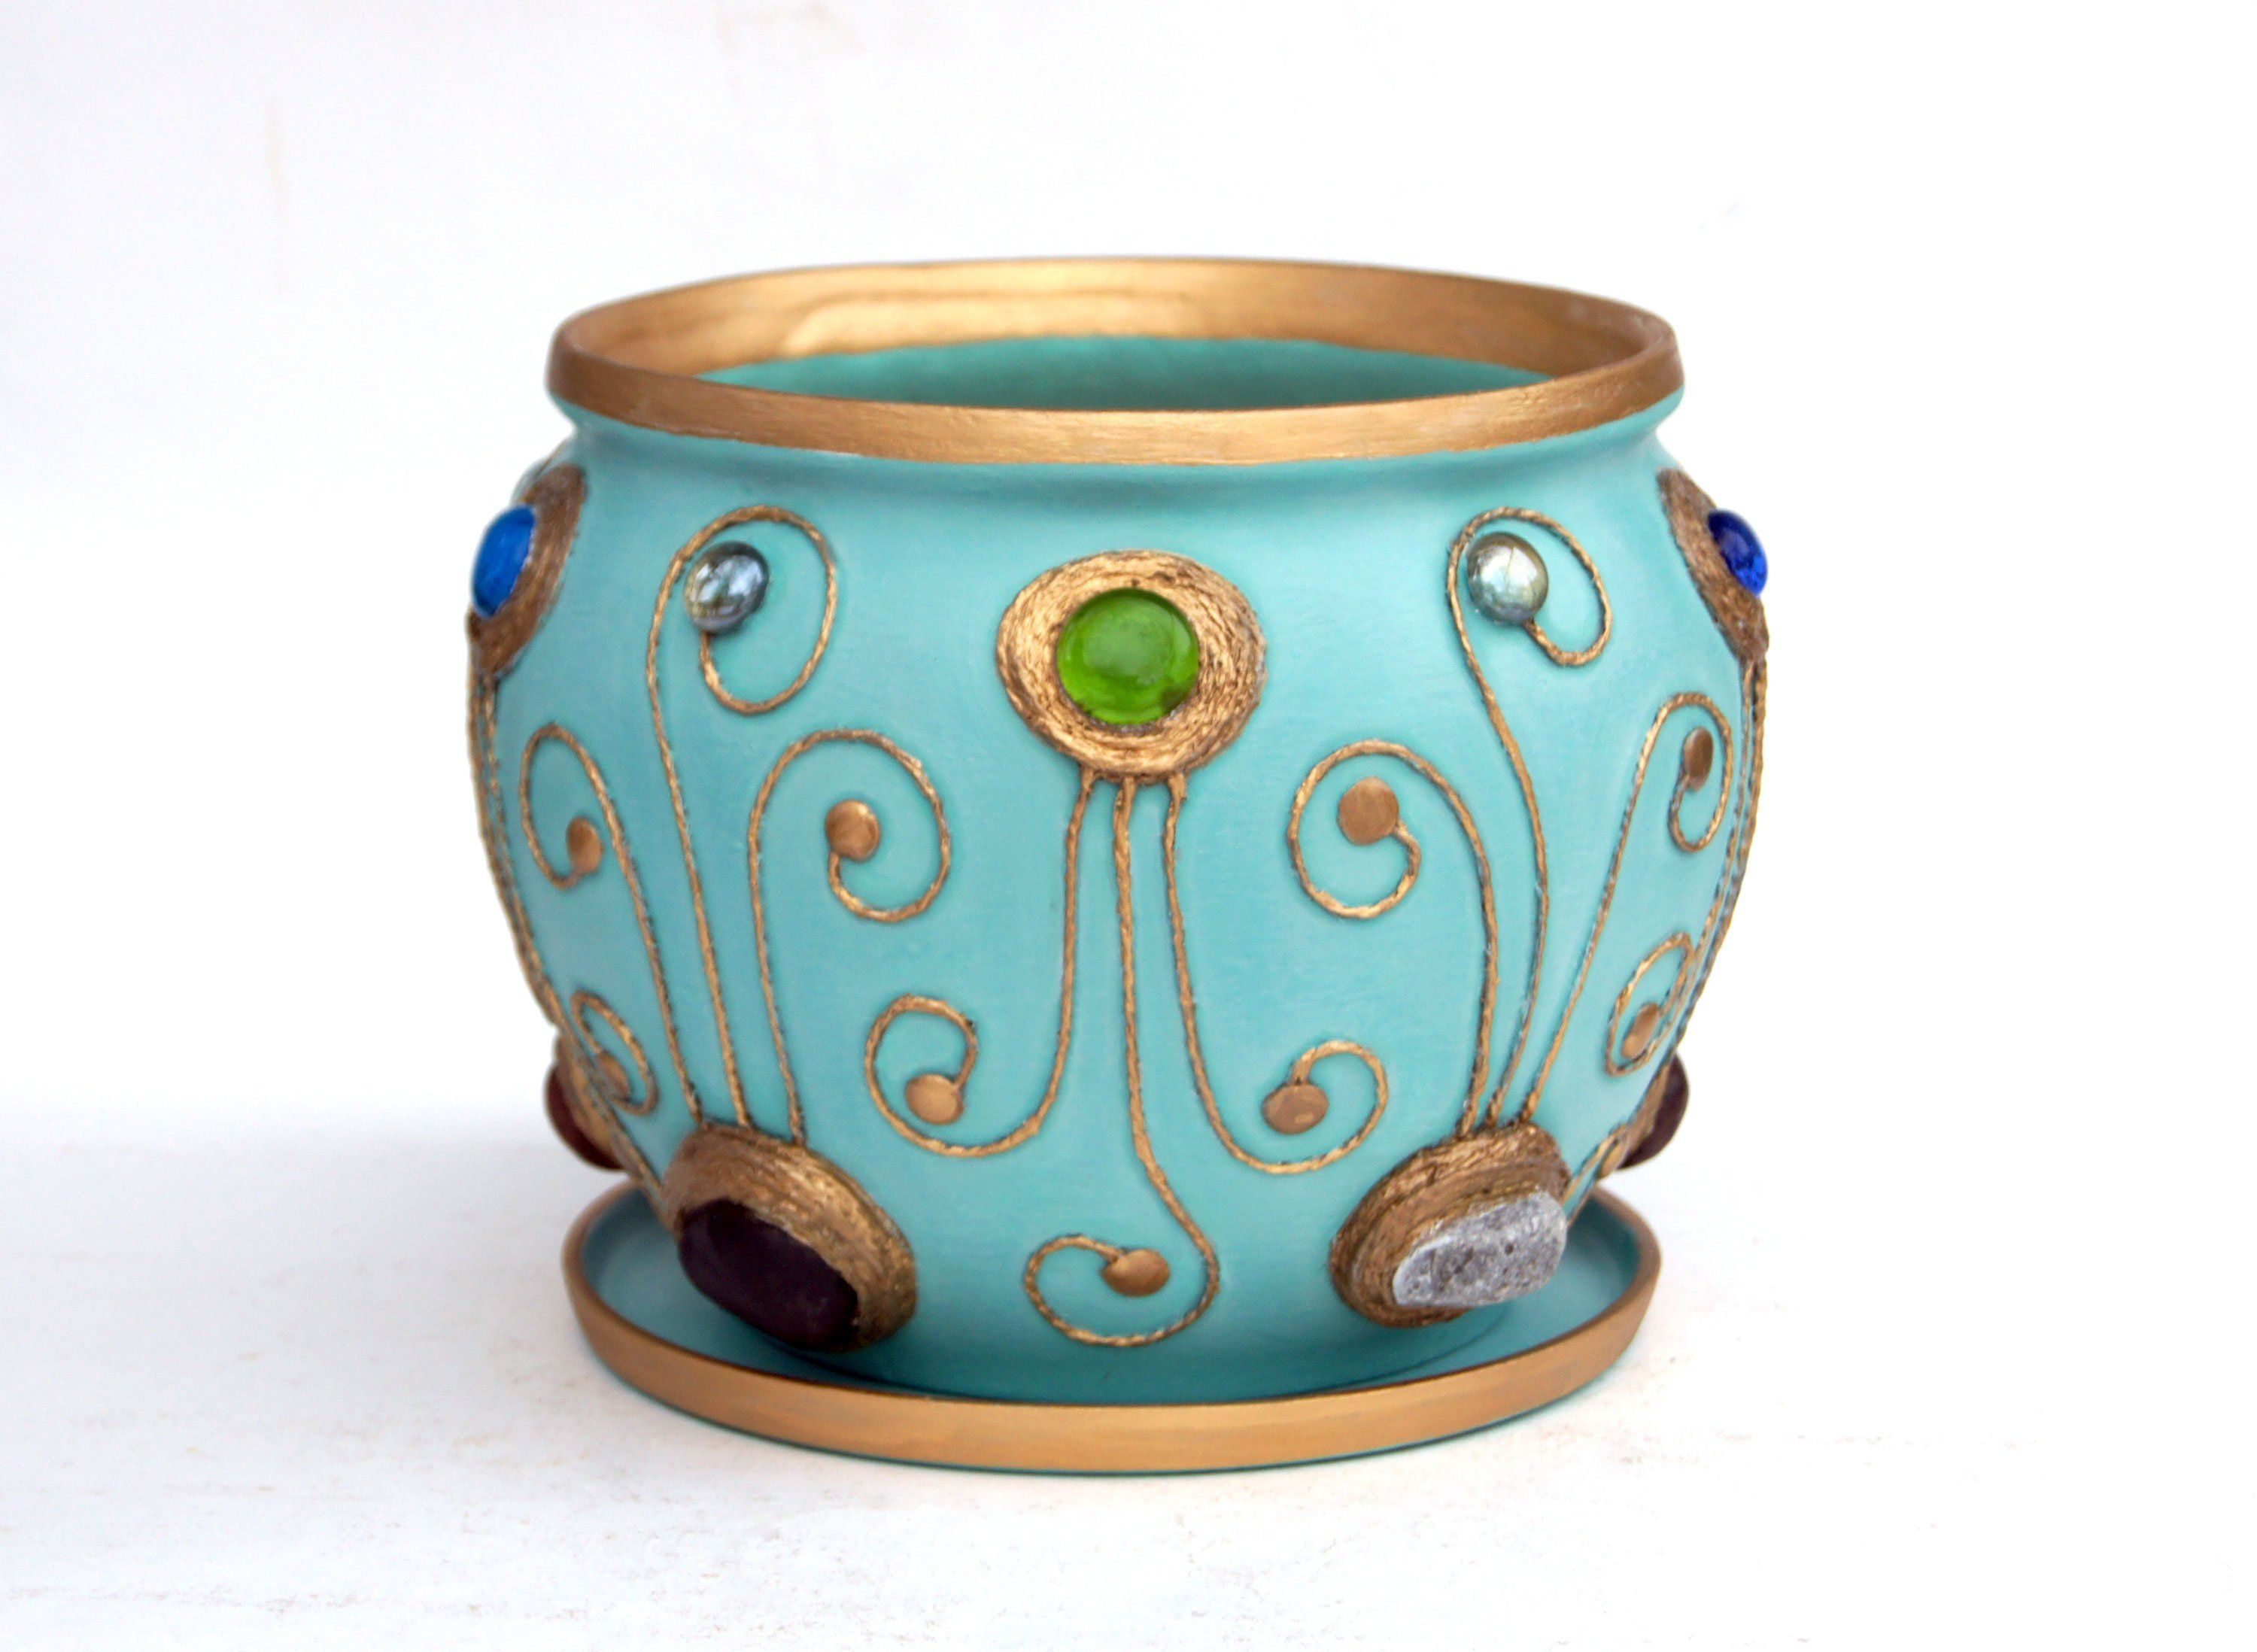 Large Hand Painted Ceramic Plant Pot Indoor Turquoise Flower Pot Pottery Handmade Planter Plant Holder Cache Pot Gardening Birthday Gift Her